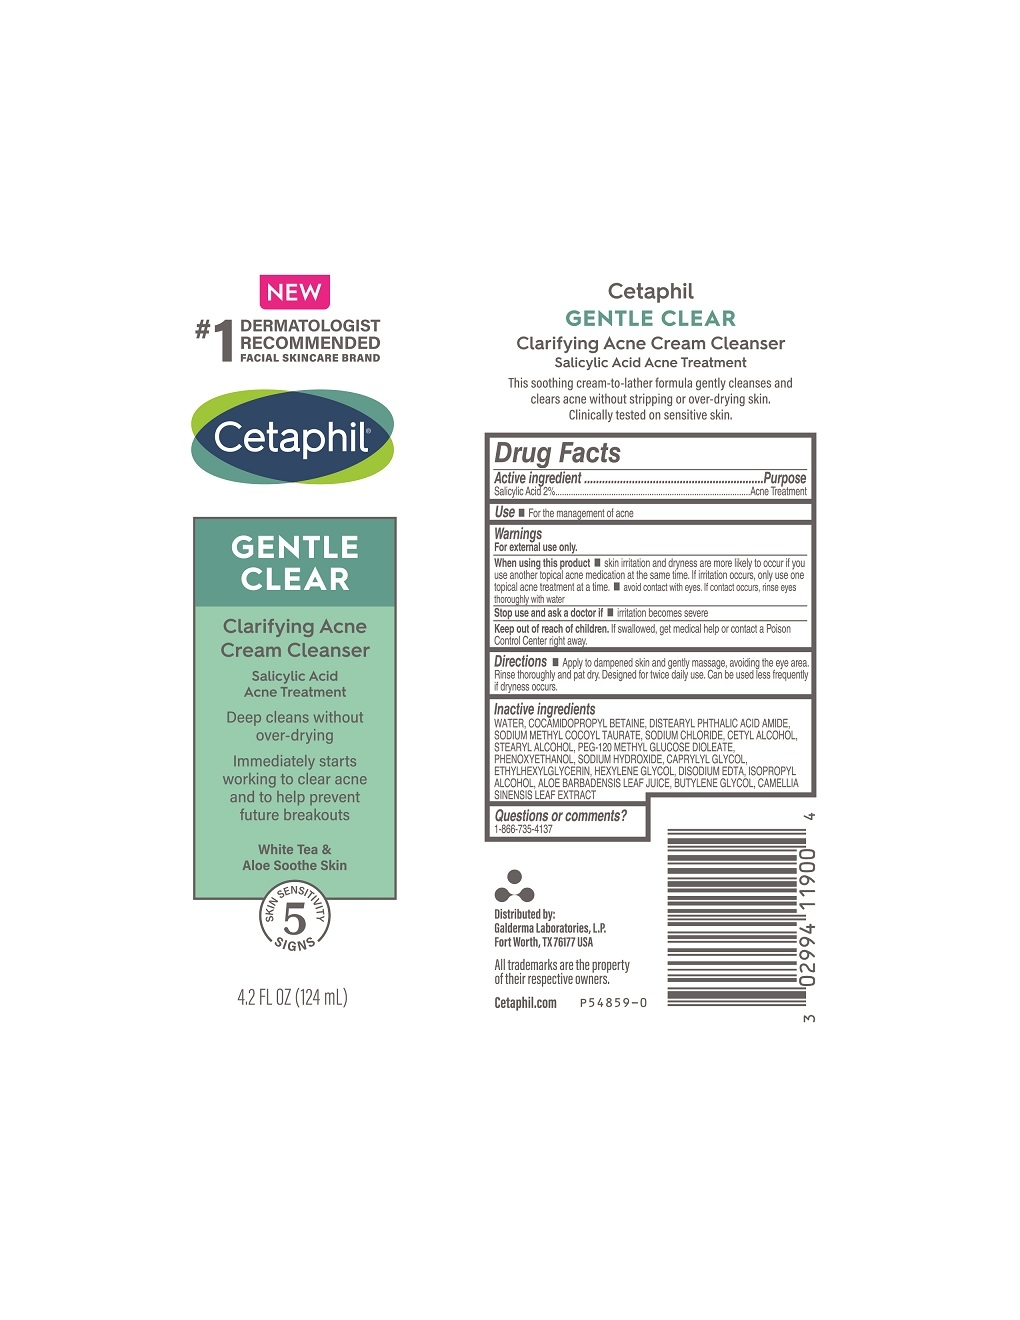 P54859-0 Cetaphil Claryifying Acne Cleanser 4.2oz Tube